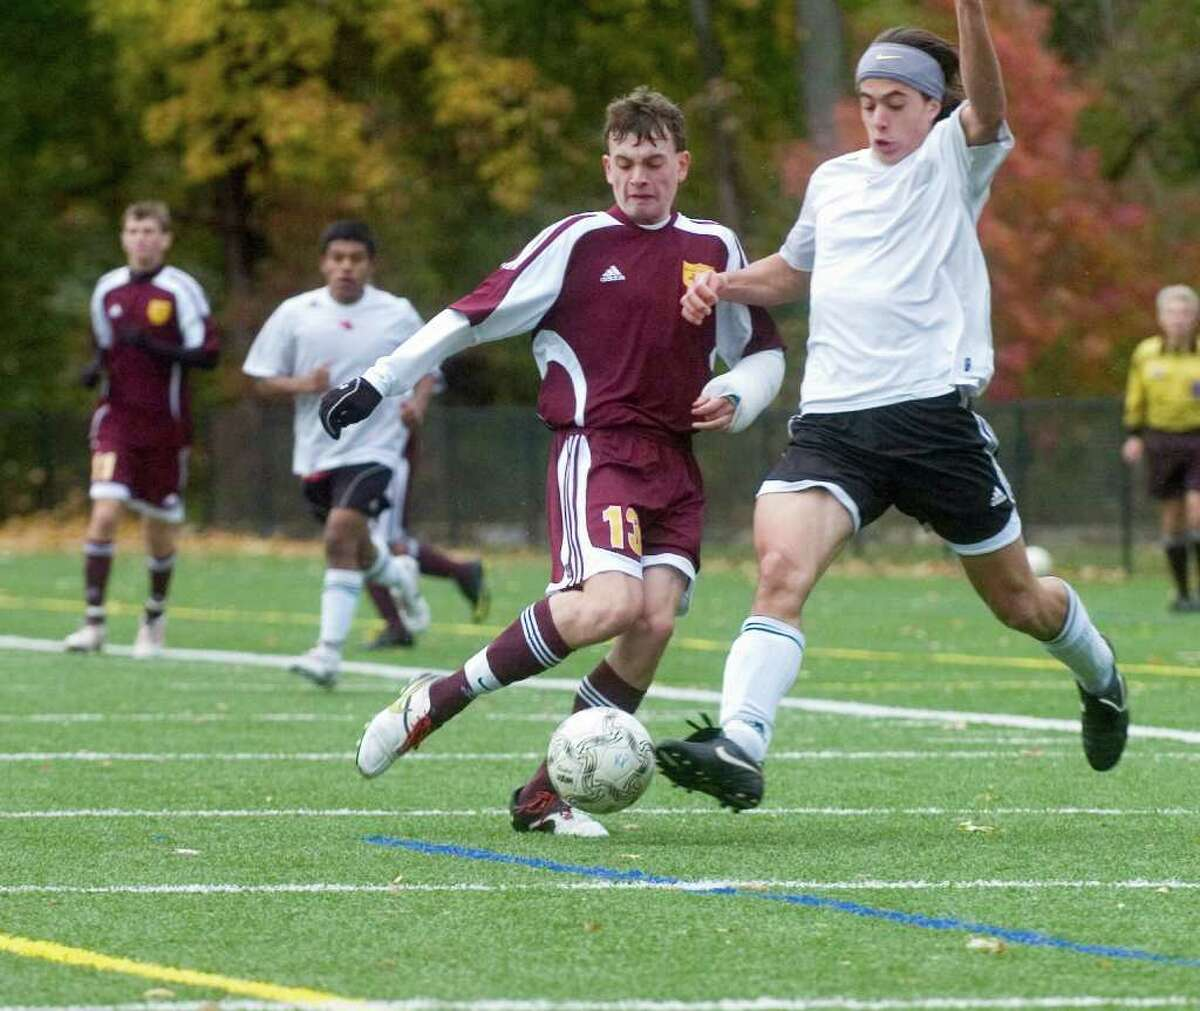 South Windsor High School's # 13, Evan Cheman, left, fights with Greenwich High School's #18, Phillip Collins in the first round of the Class LL boys soccer tournament hosted by Greenwich, on Monday, Nov. 8, 2010.